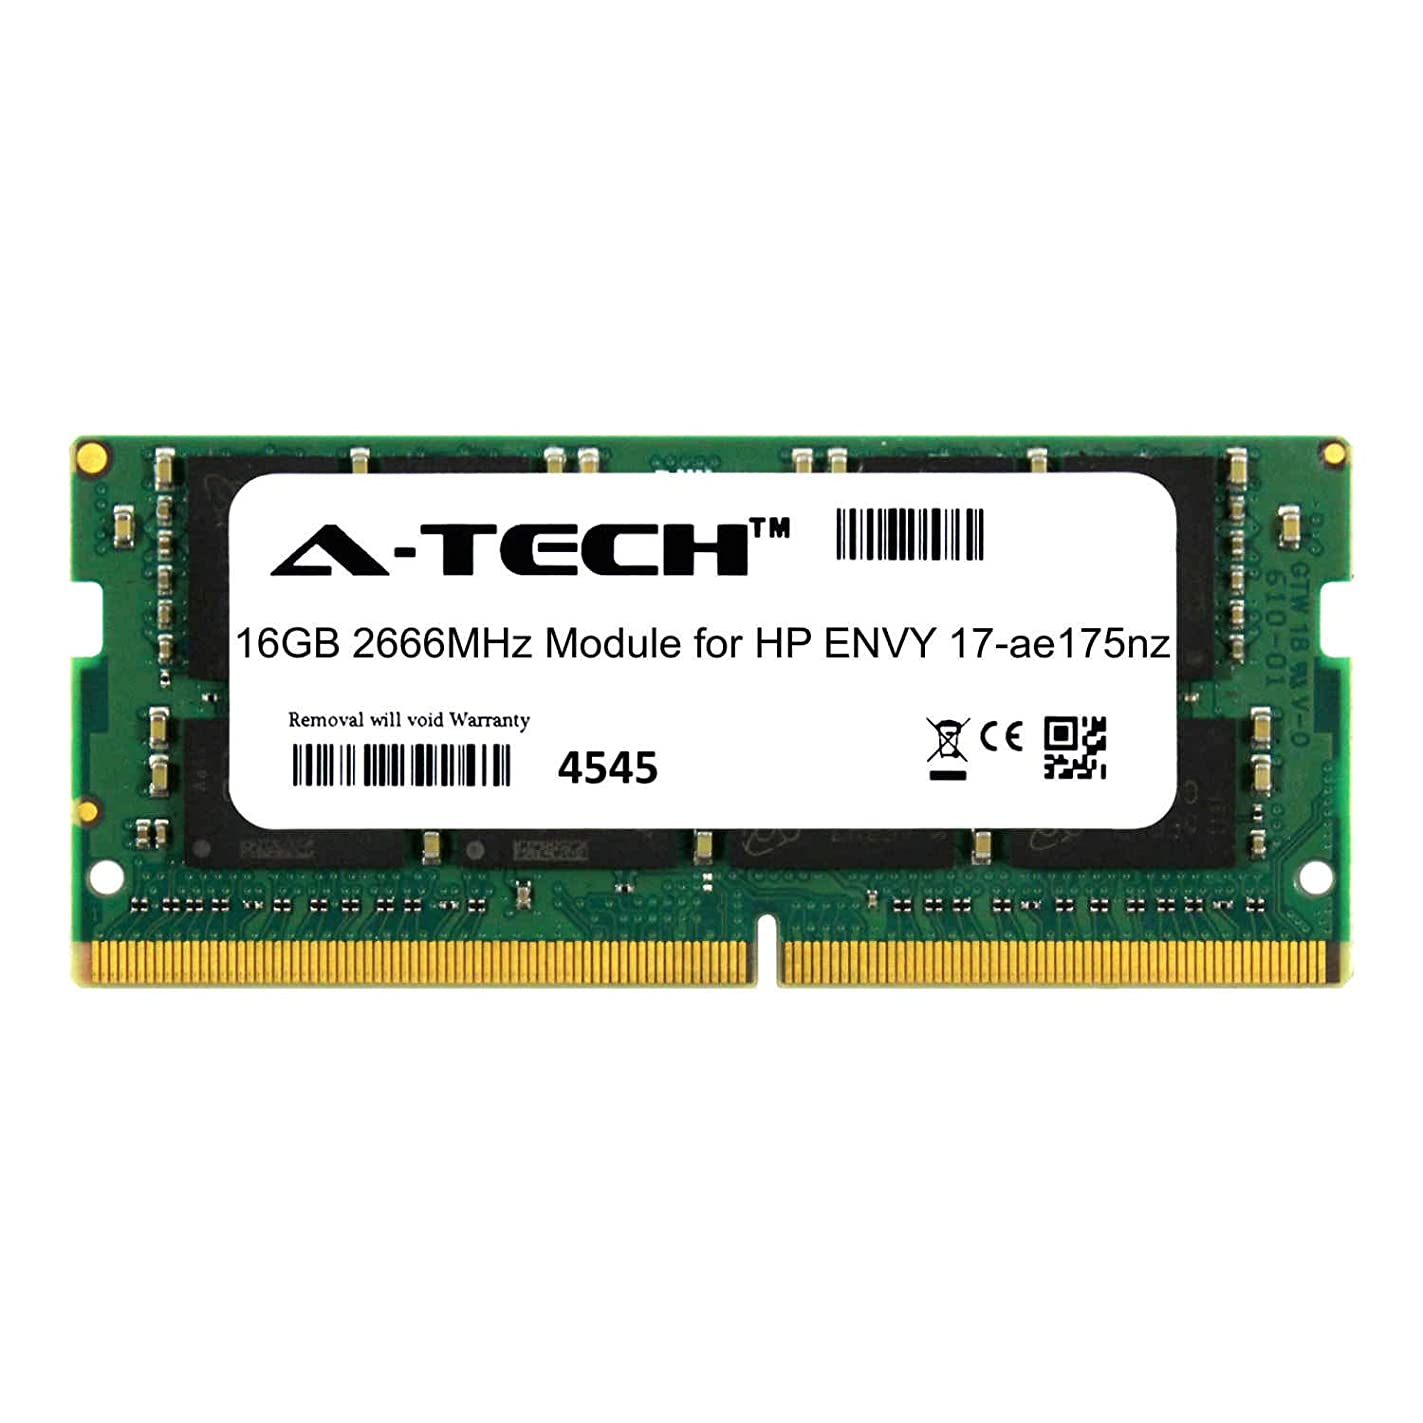 A-Tech 16GB Module for HP Envy 17-ae175nz Laptop & Notebook Compatible DDR4 2666Mhz Memory Ram (ATMS273965A25832X1) khf74887102